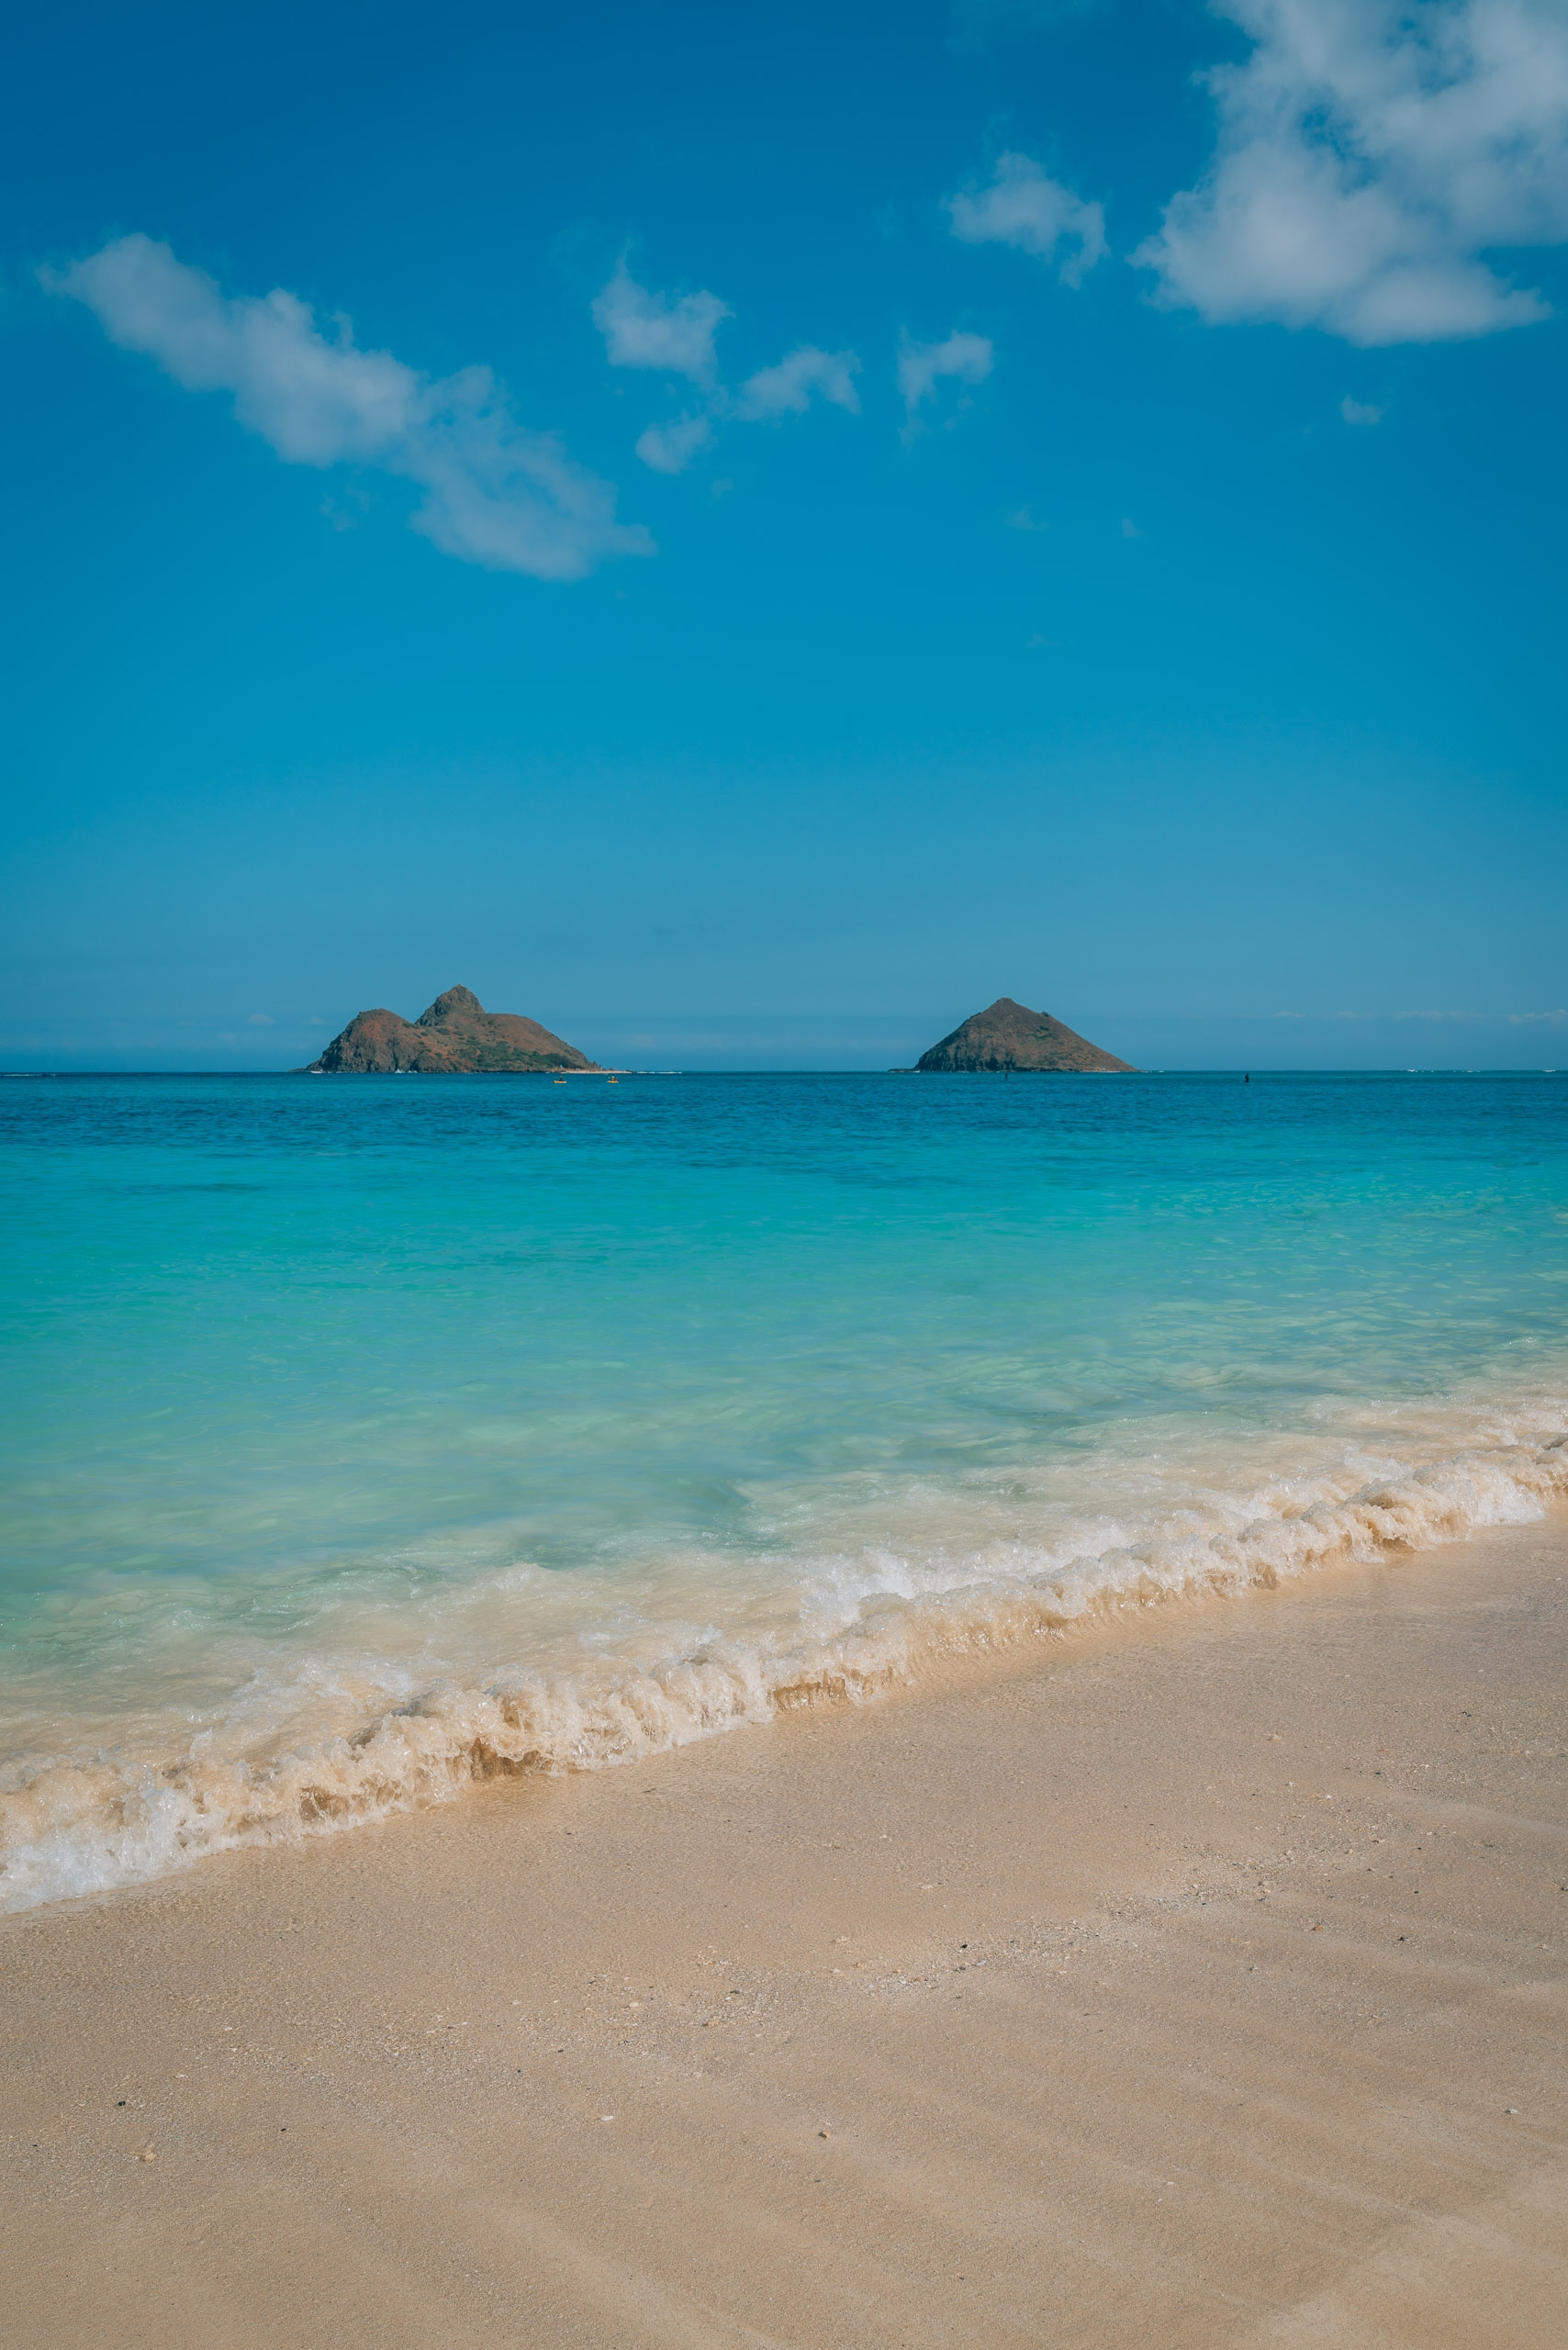 The Mokes at Lanikai Oahu 2